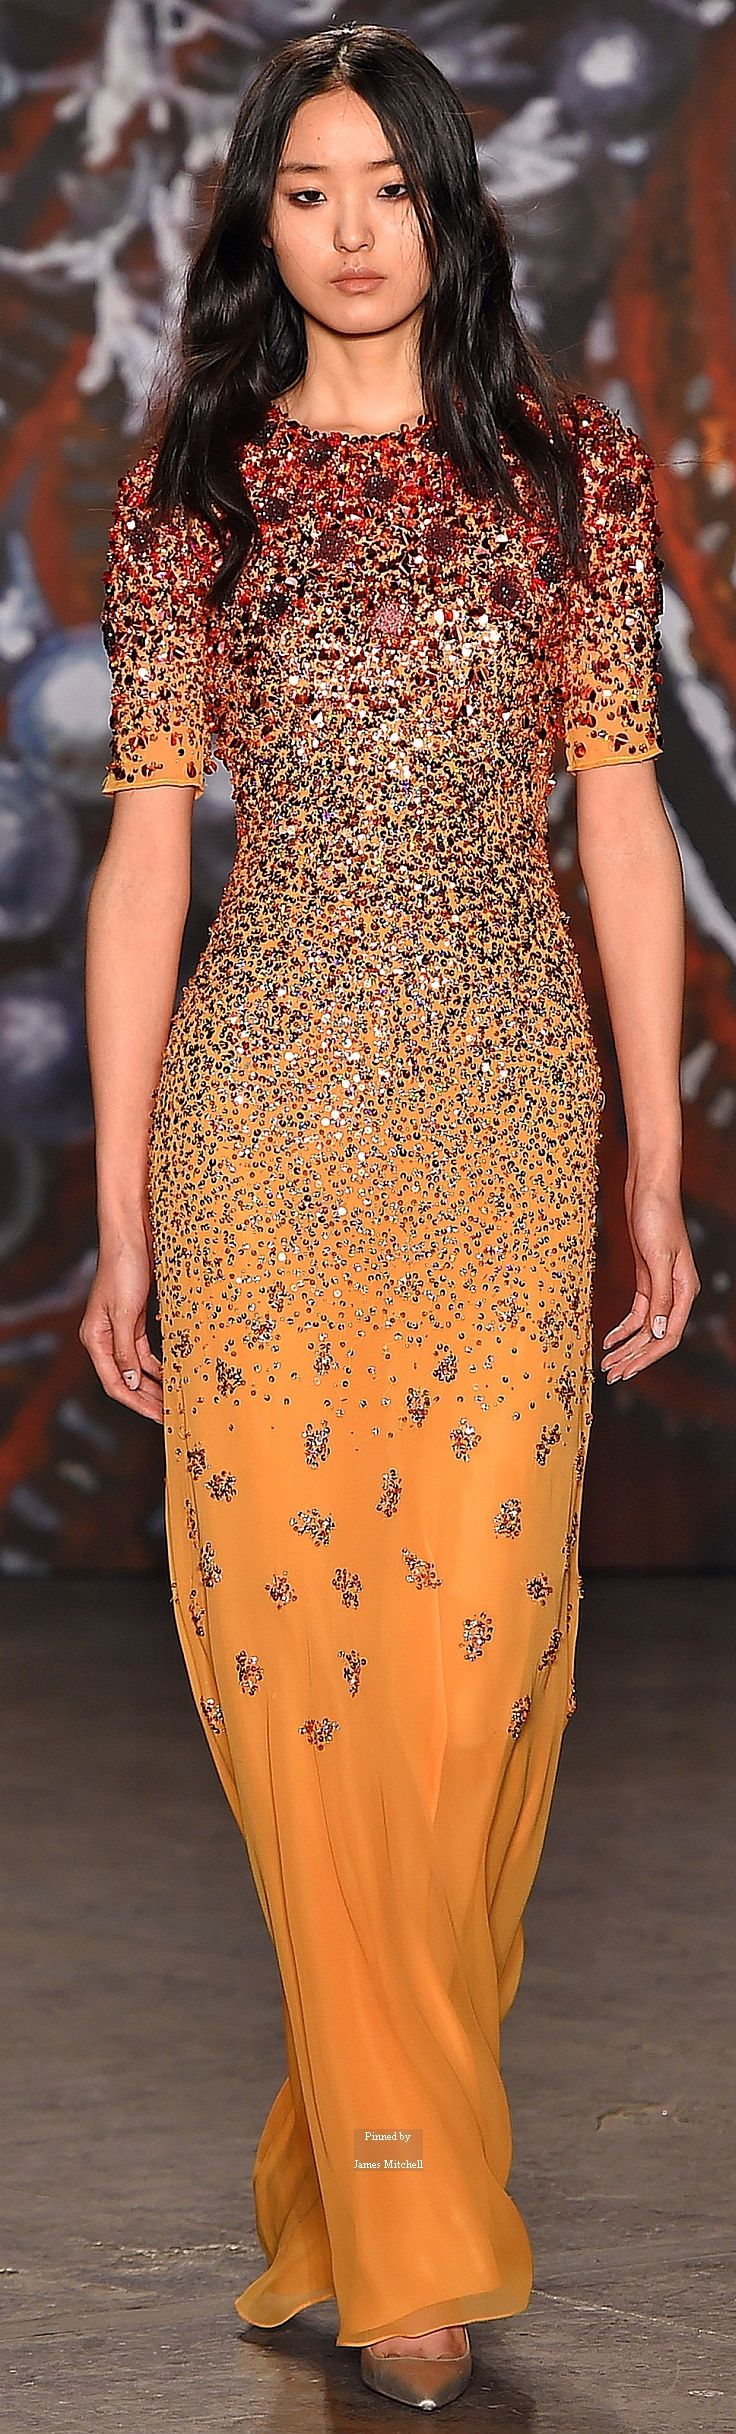 Jenny Packham Collections Fall Winter 2015-16 collection If you like this item, please visit http://www.shopcost.co.uk/gowns